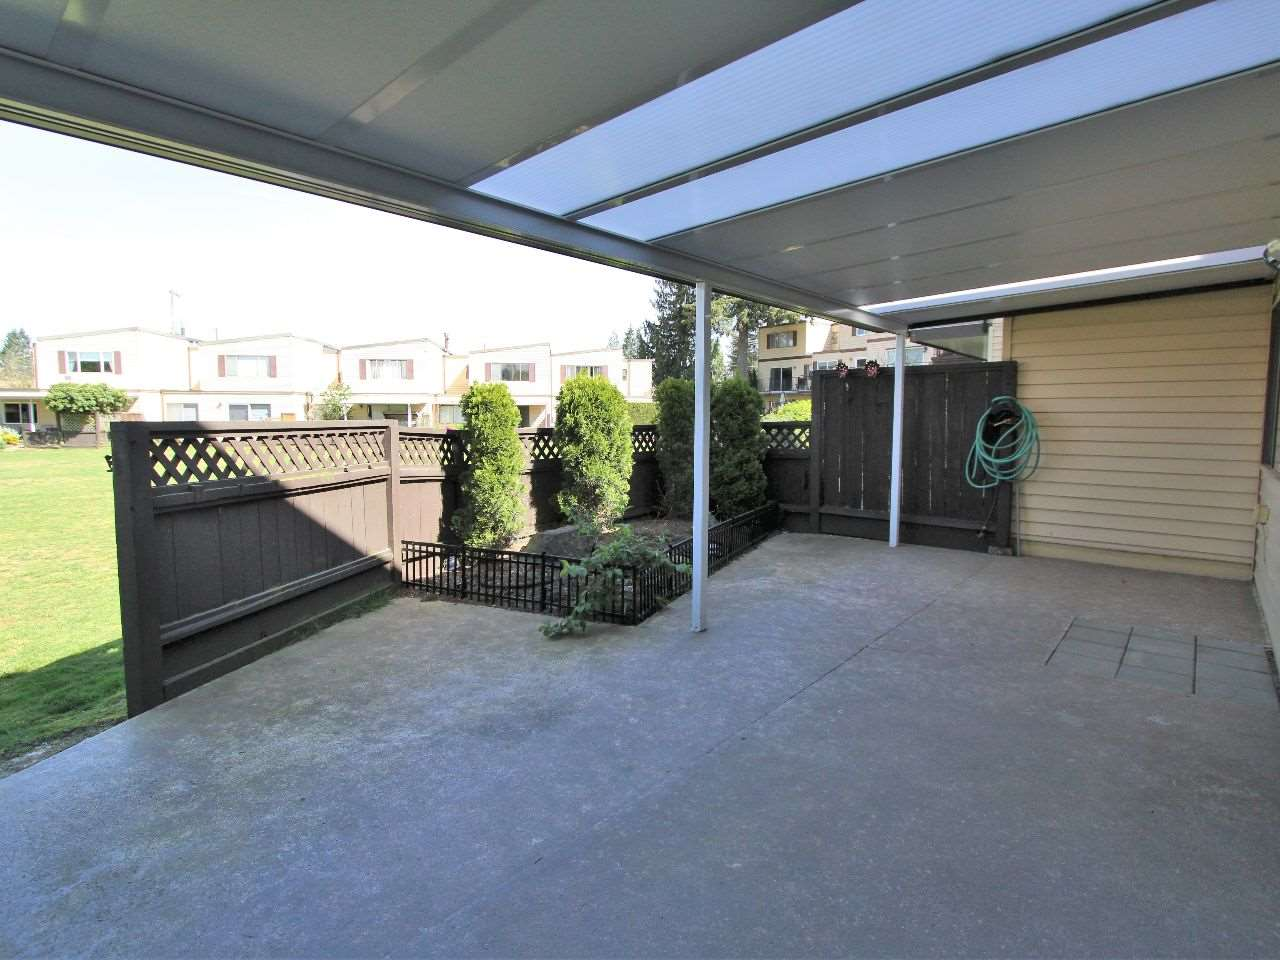 Photo 18: 606 2445 WARE Street in Abbotsford: Central Abbotsford Townhouse for sale : MLS® # R2059494